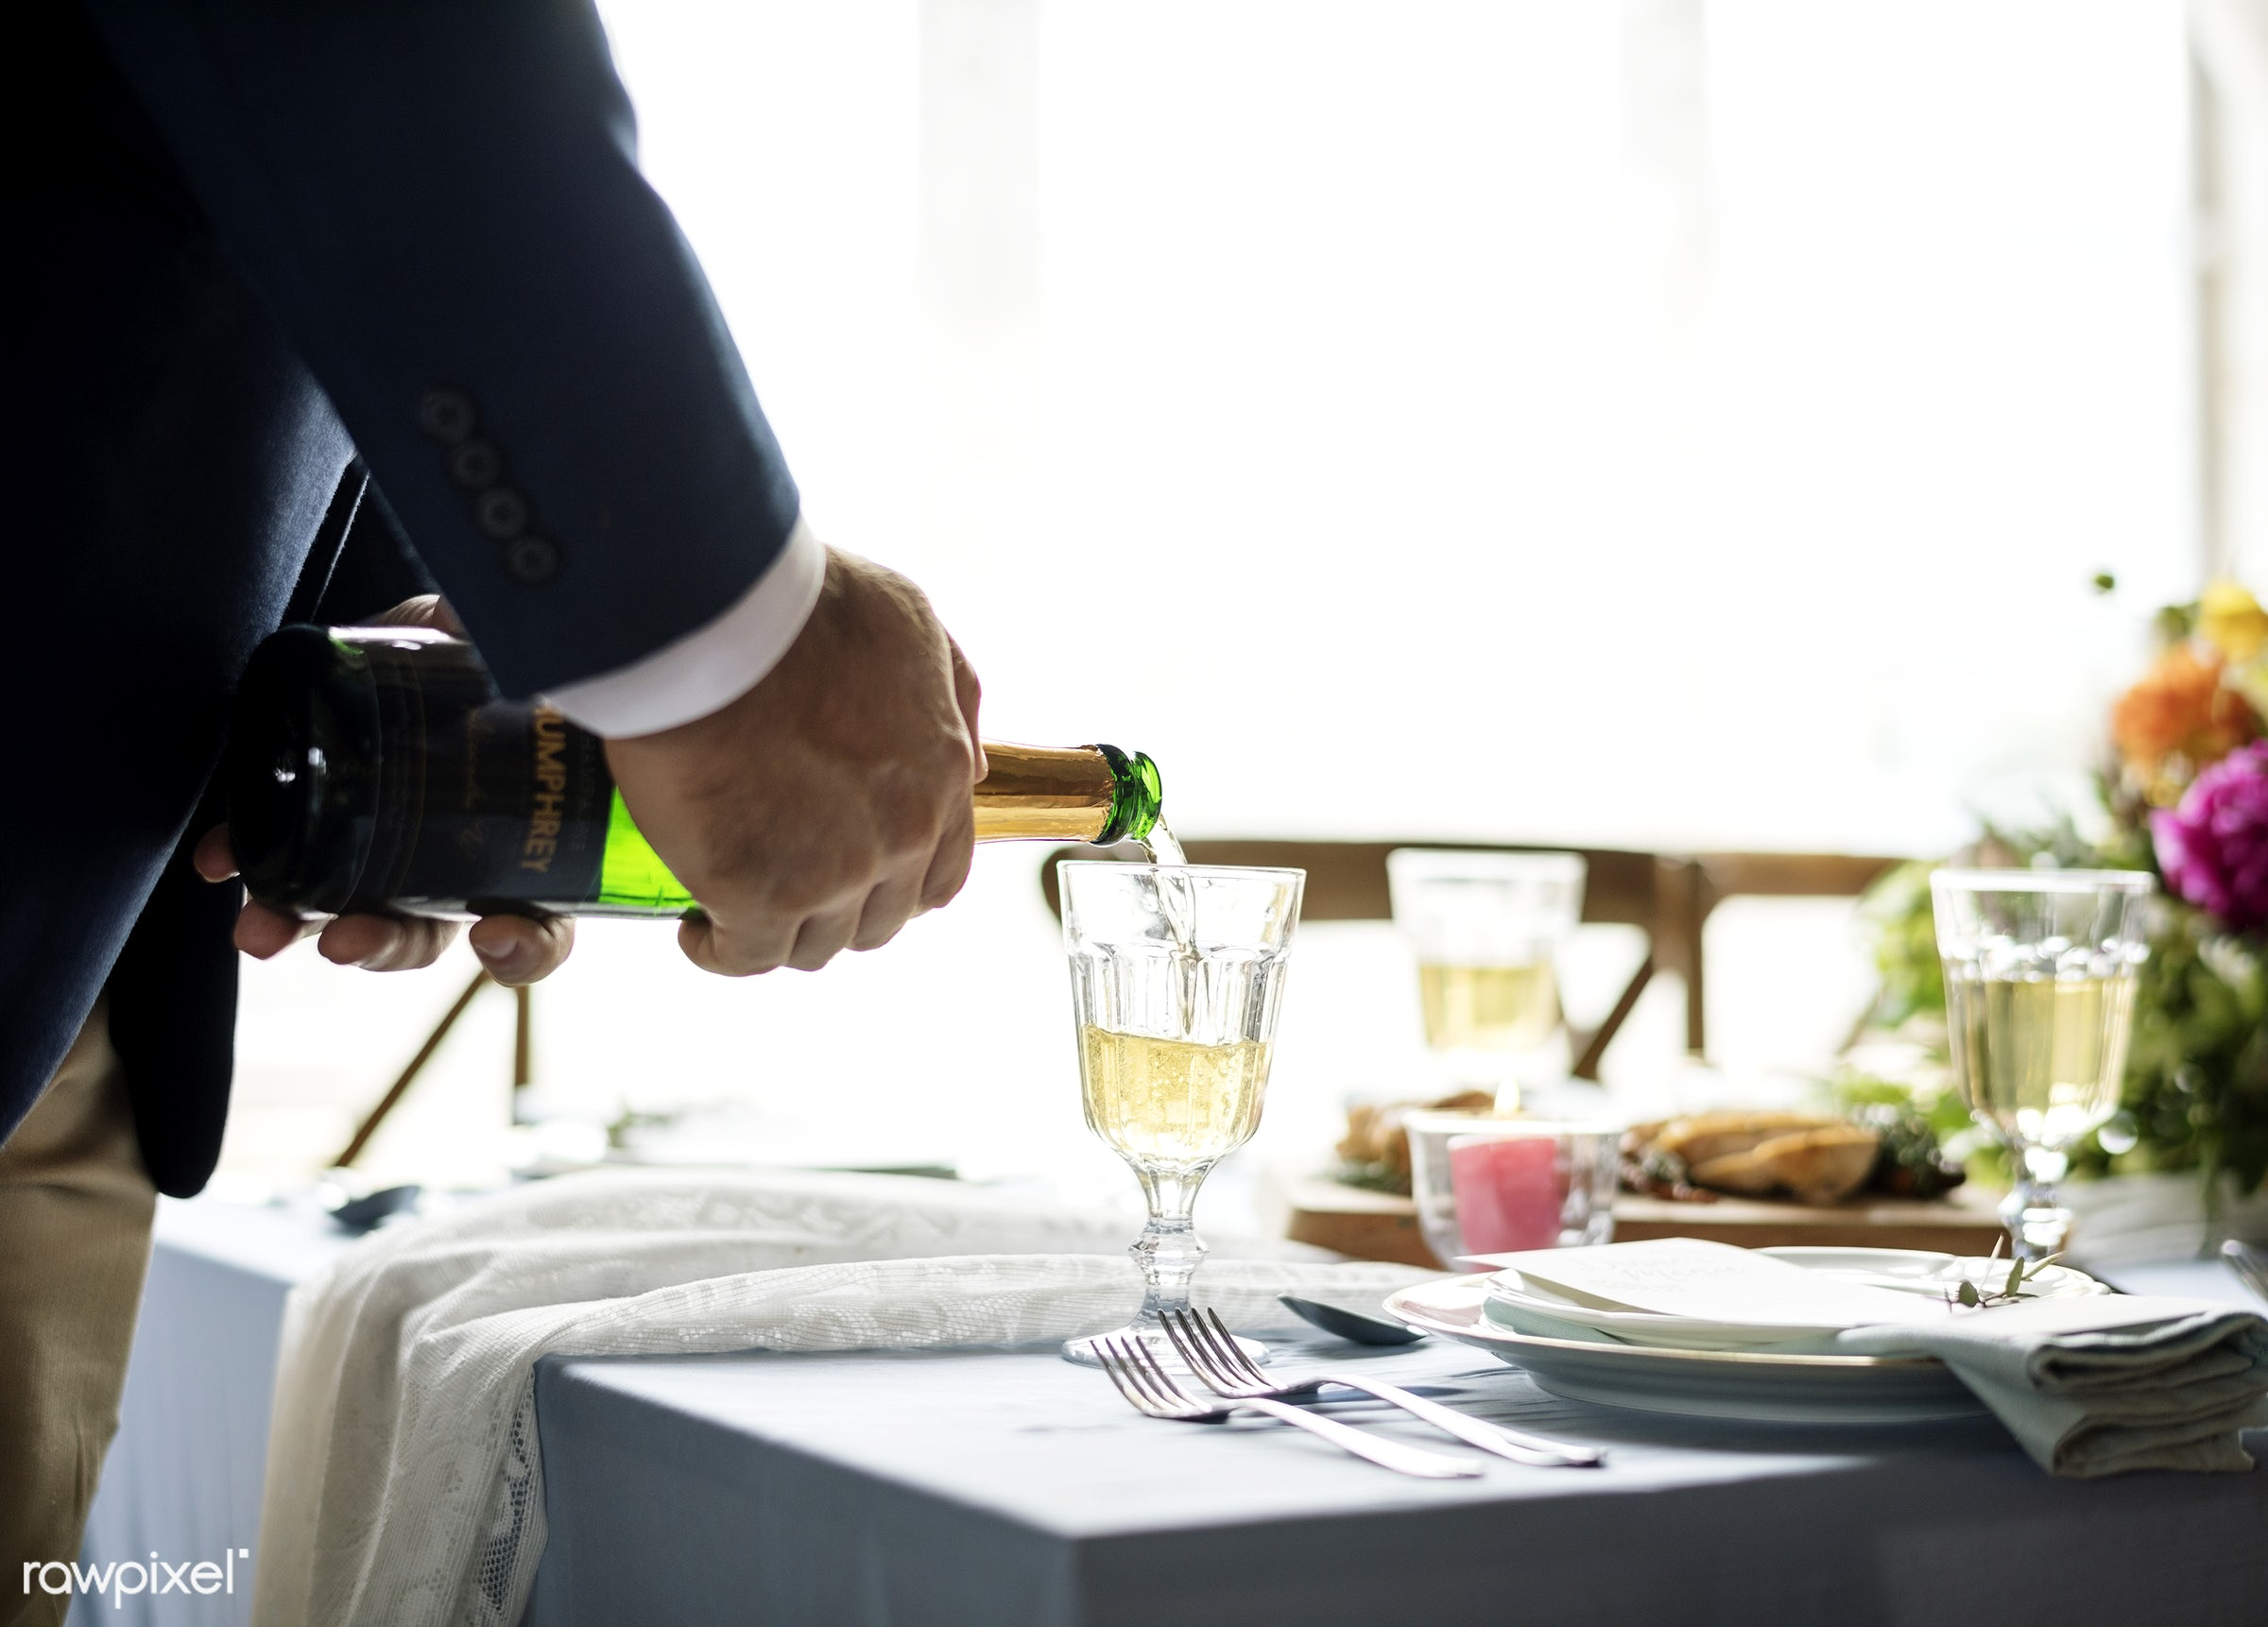 Hand pouring champagne in a glass - wine, drink, alcohol, bottle, hand, closeup, table, glass, pouring, setting, plate,...